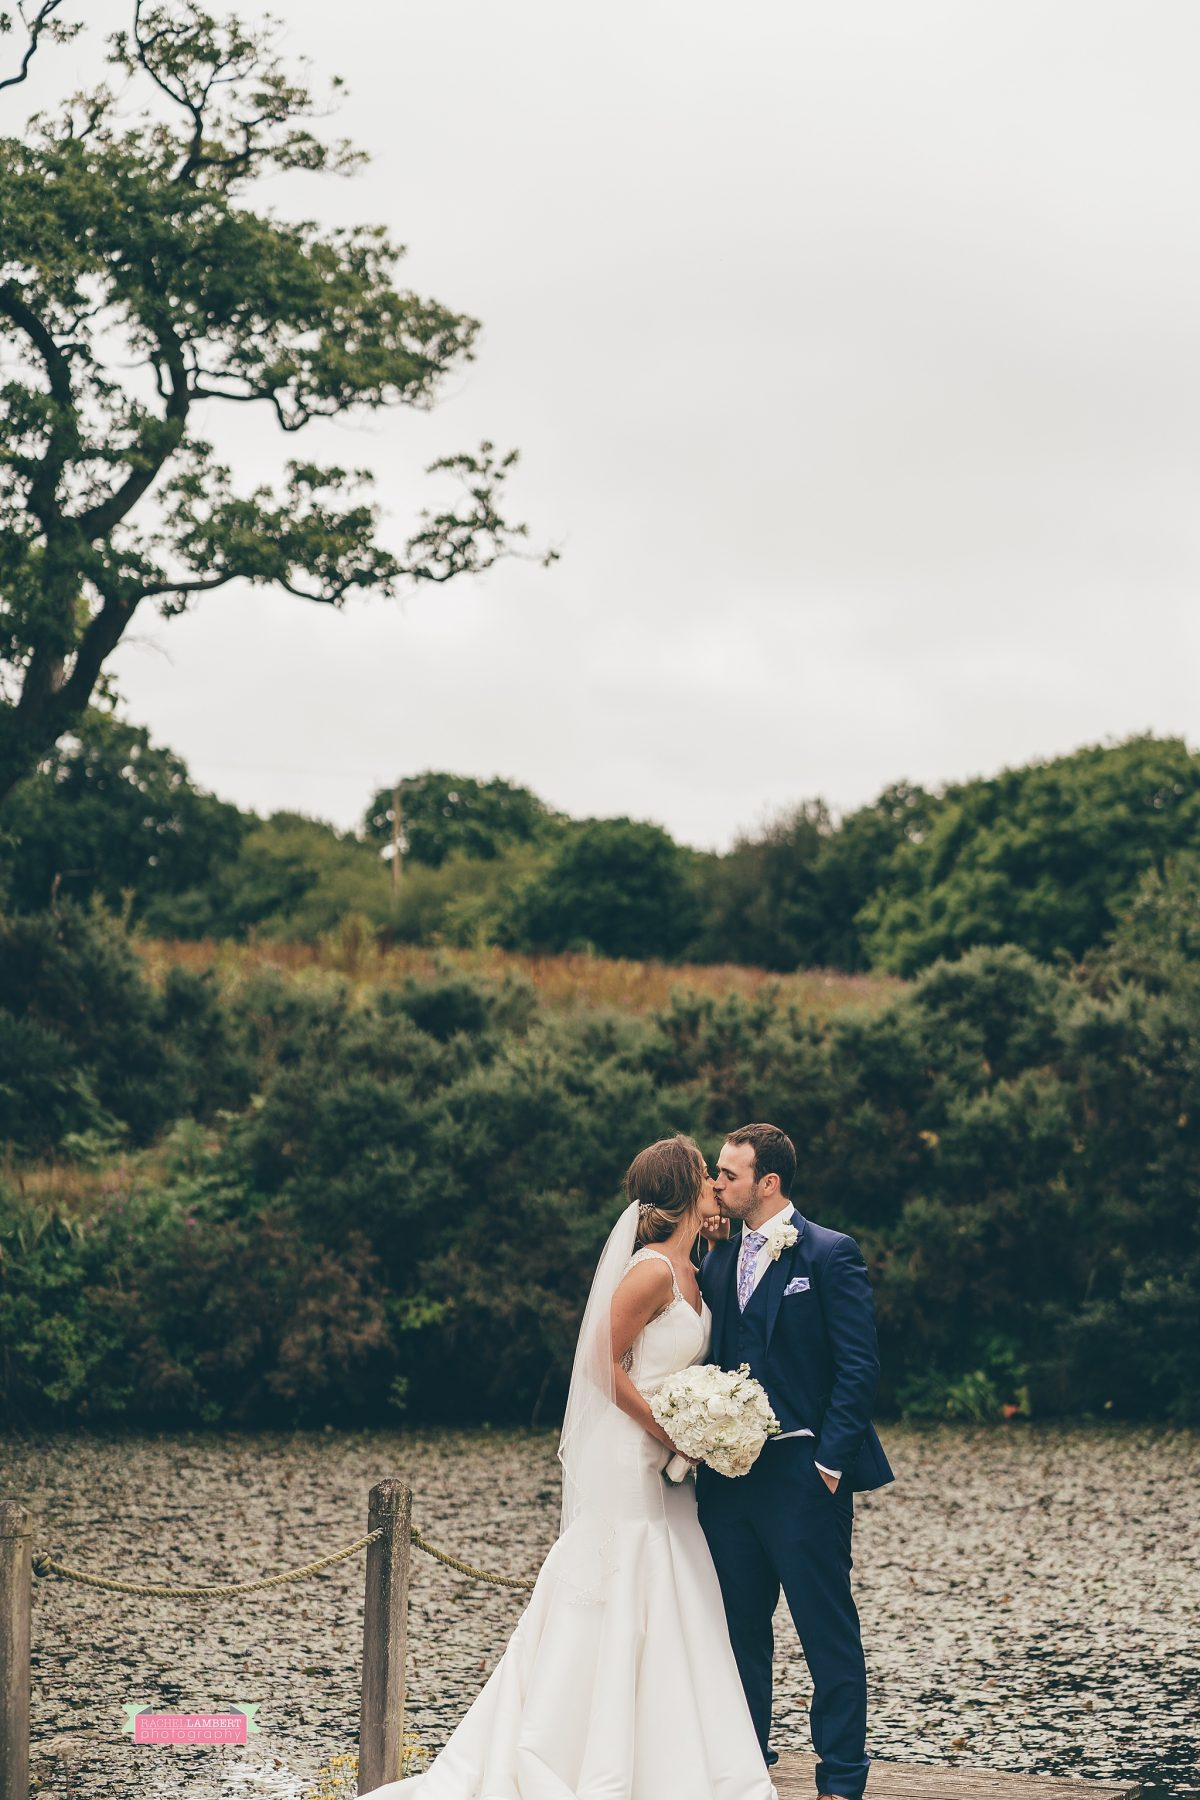 oldwalls wedding photographer bride and groom couple shots